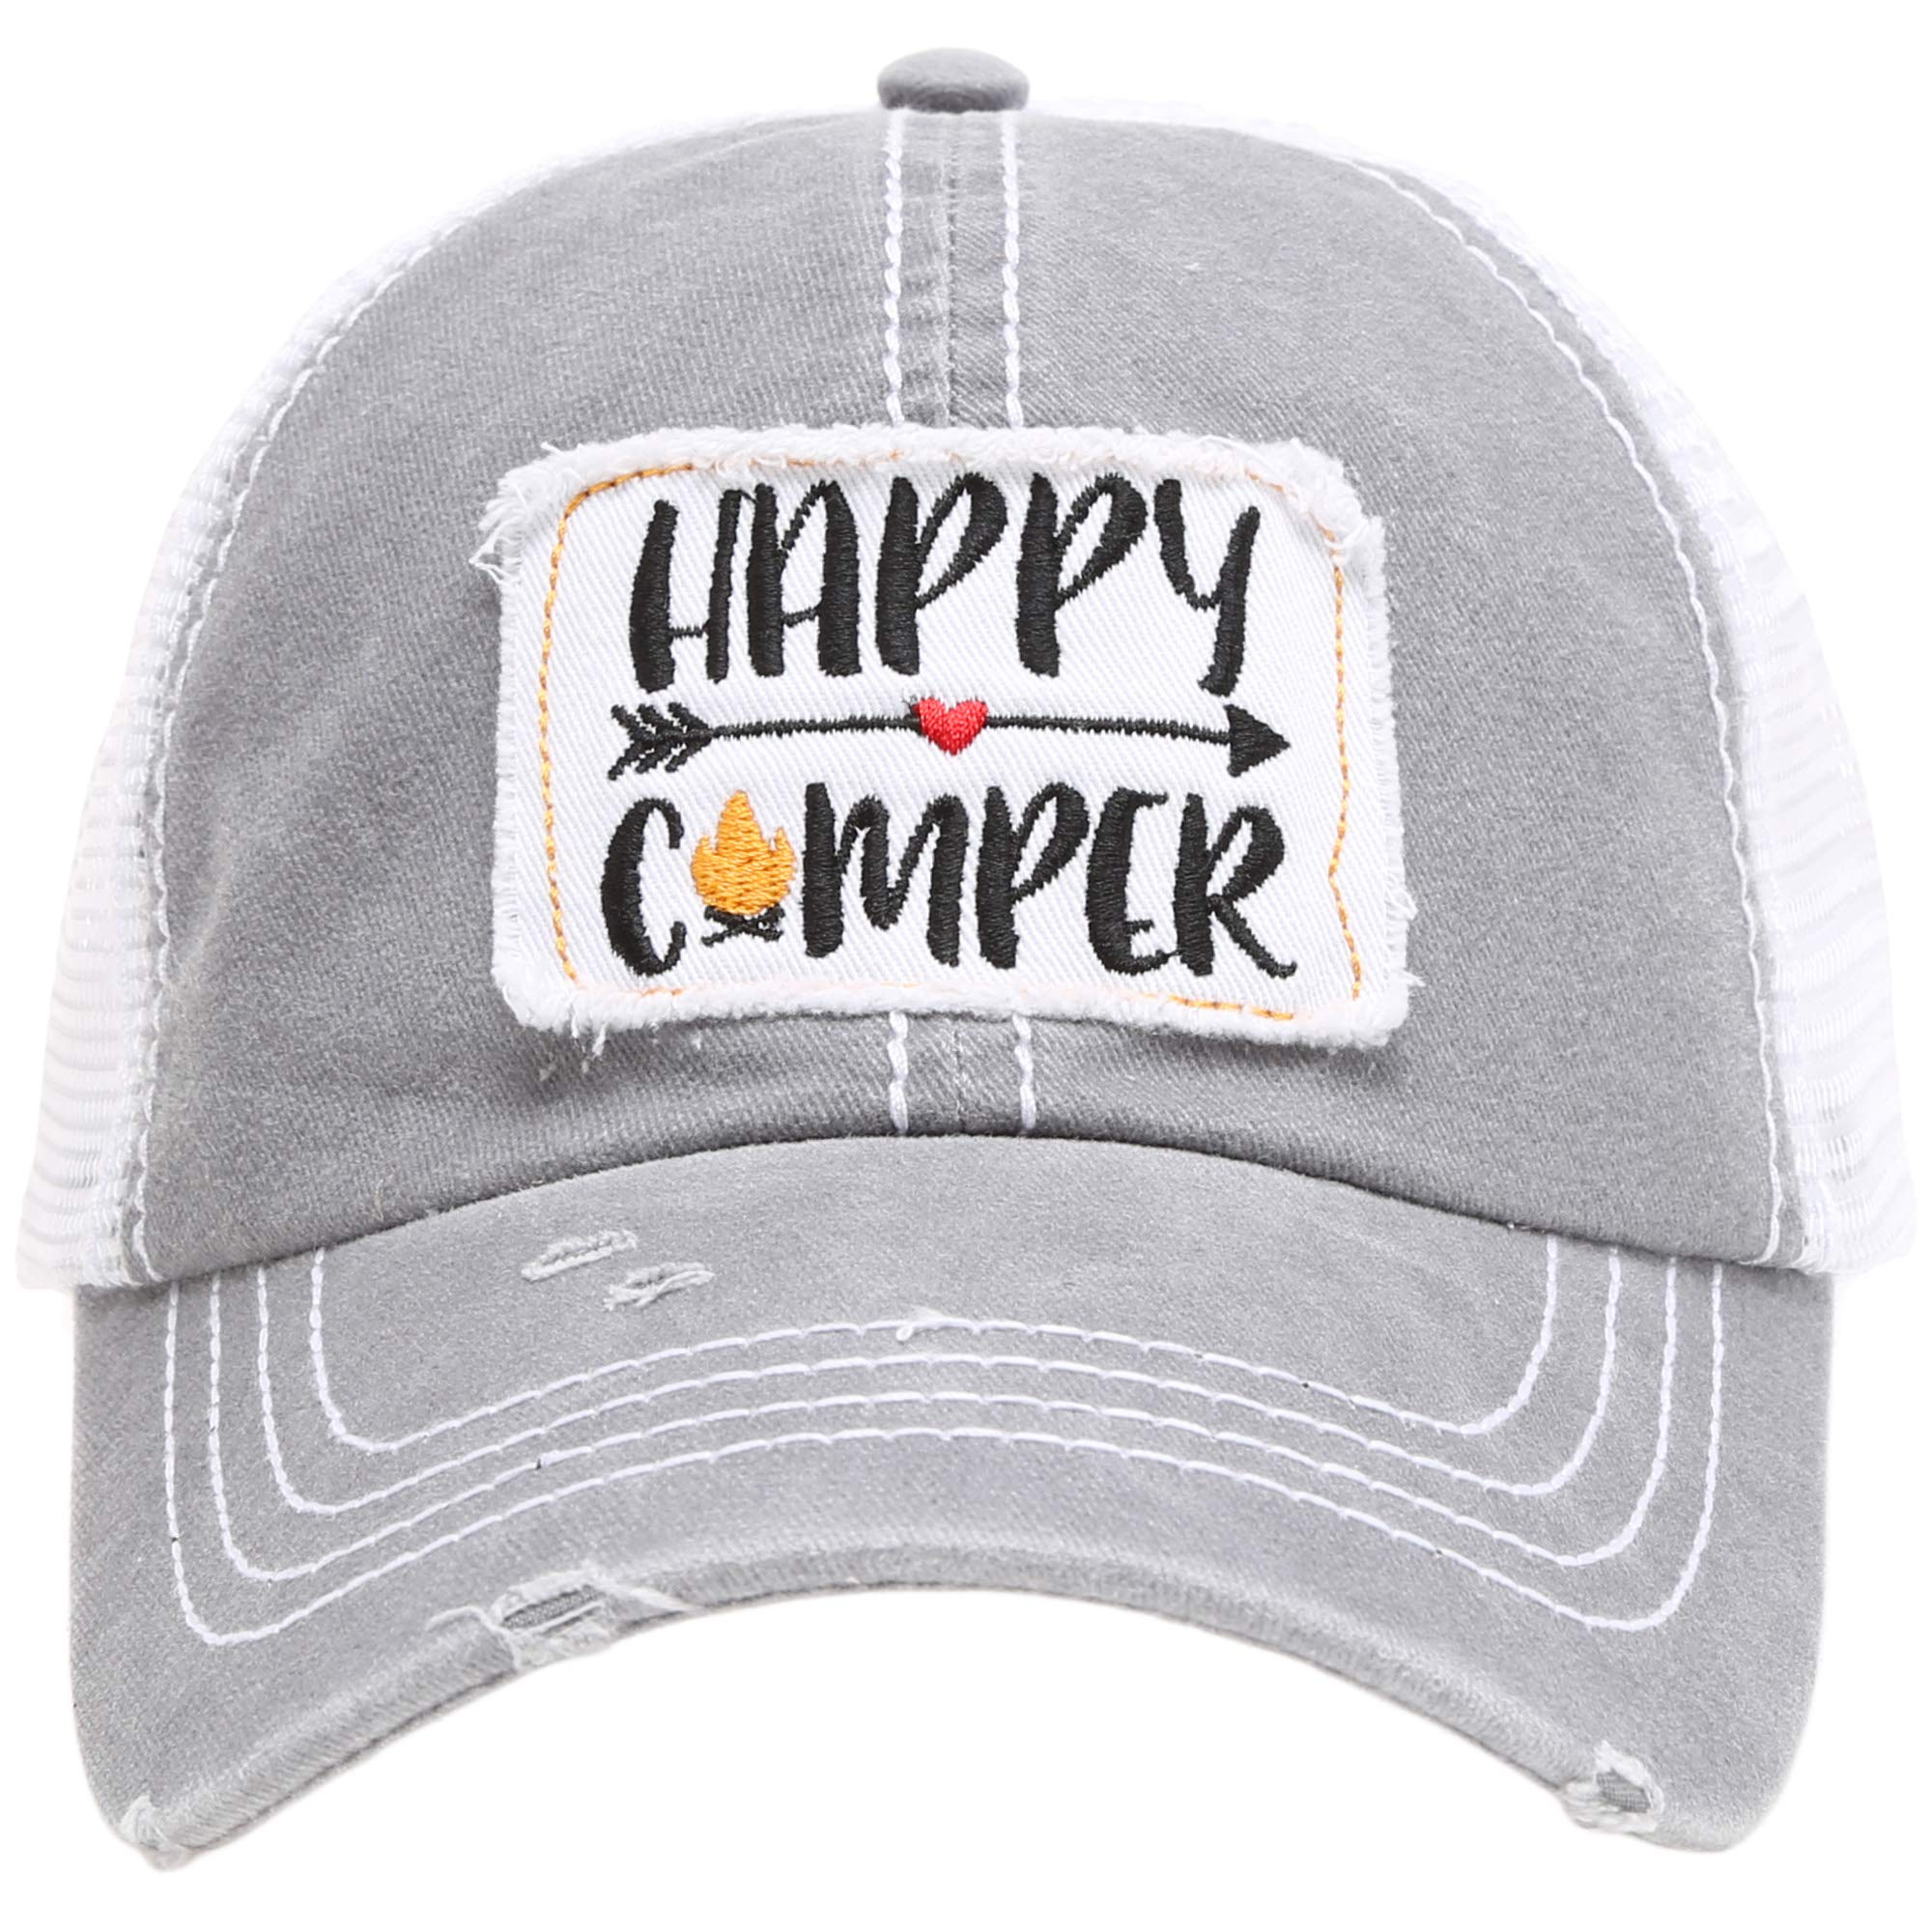 MIRMARU Women's Baseball Caps Distressed Vintage Patch Washed Cotton Low Profile Embroidered Mesh Snapback Trucker Hat (Happy Camper, Grey)